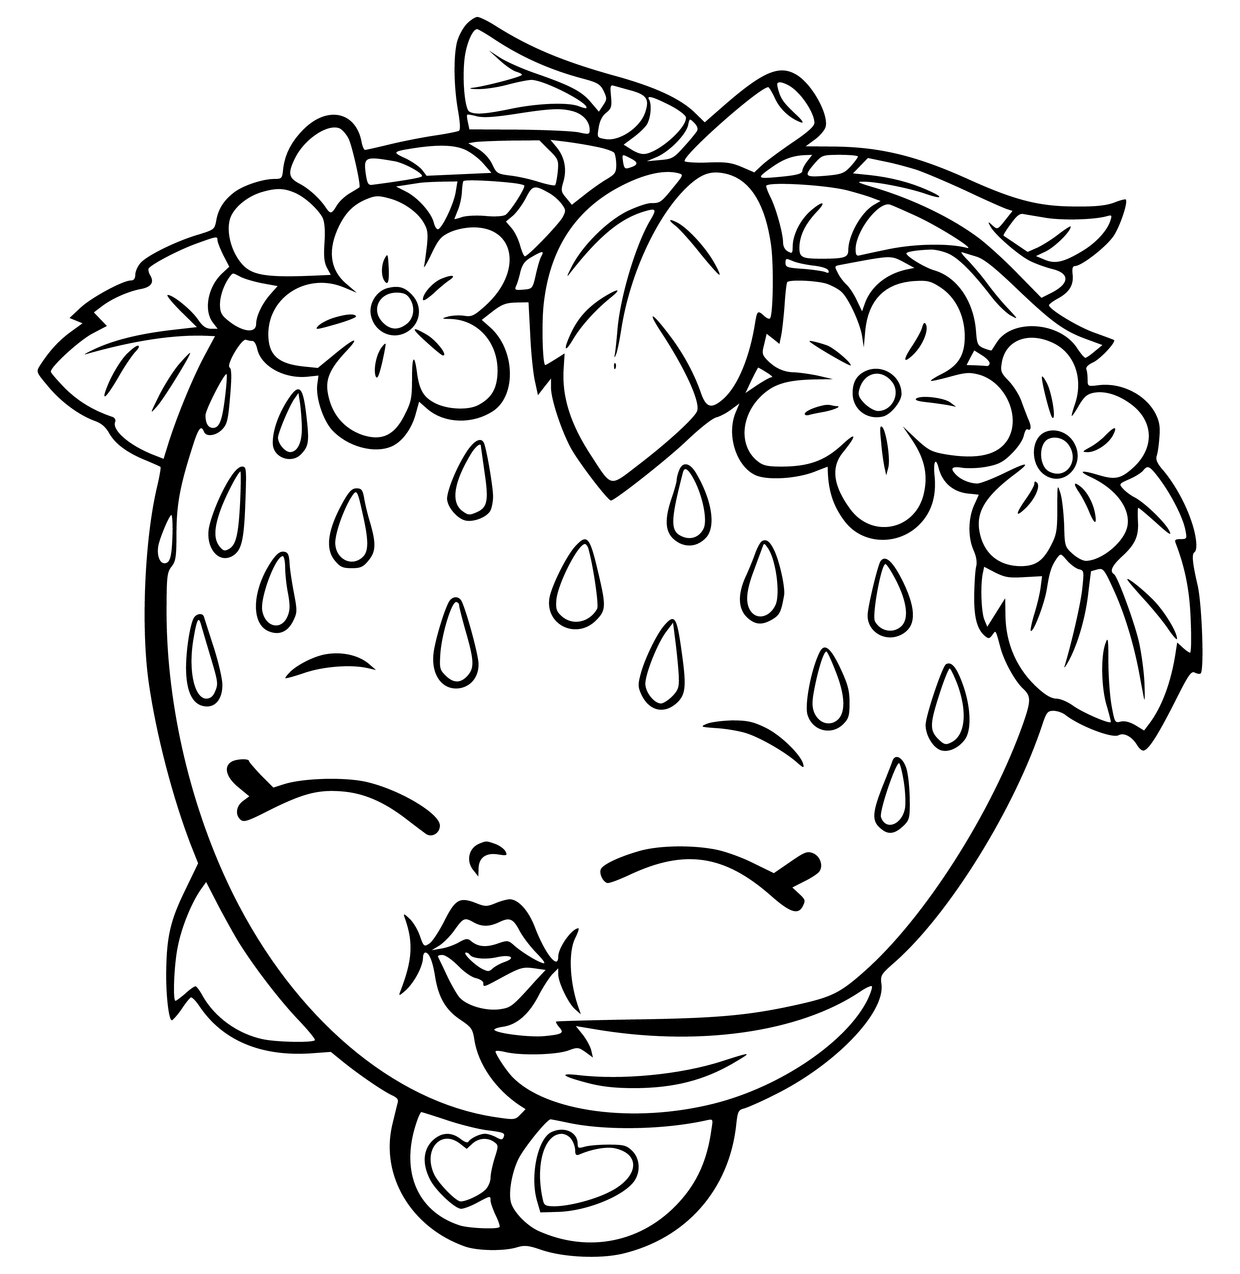 1240x1274 Cake Wishes From Shopkins Coloring Pages Printable Throughout